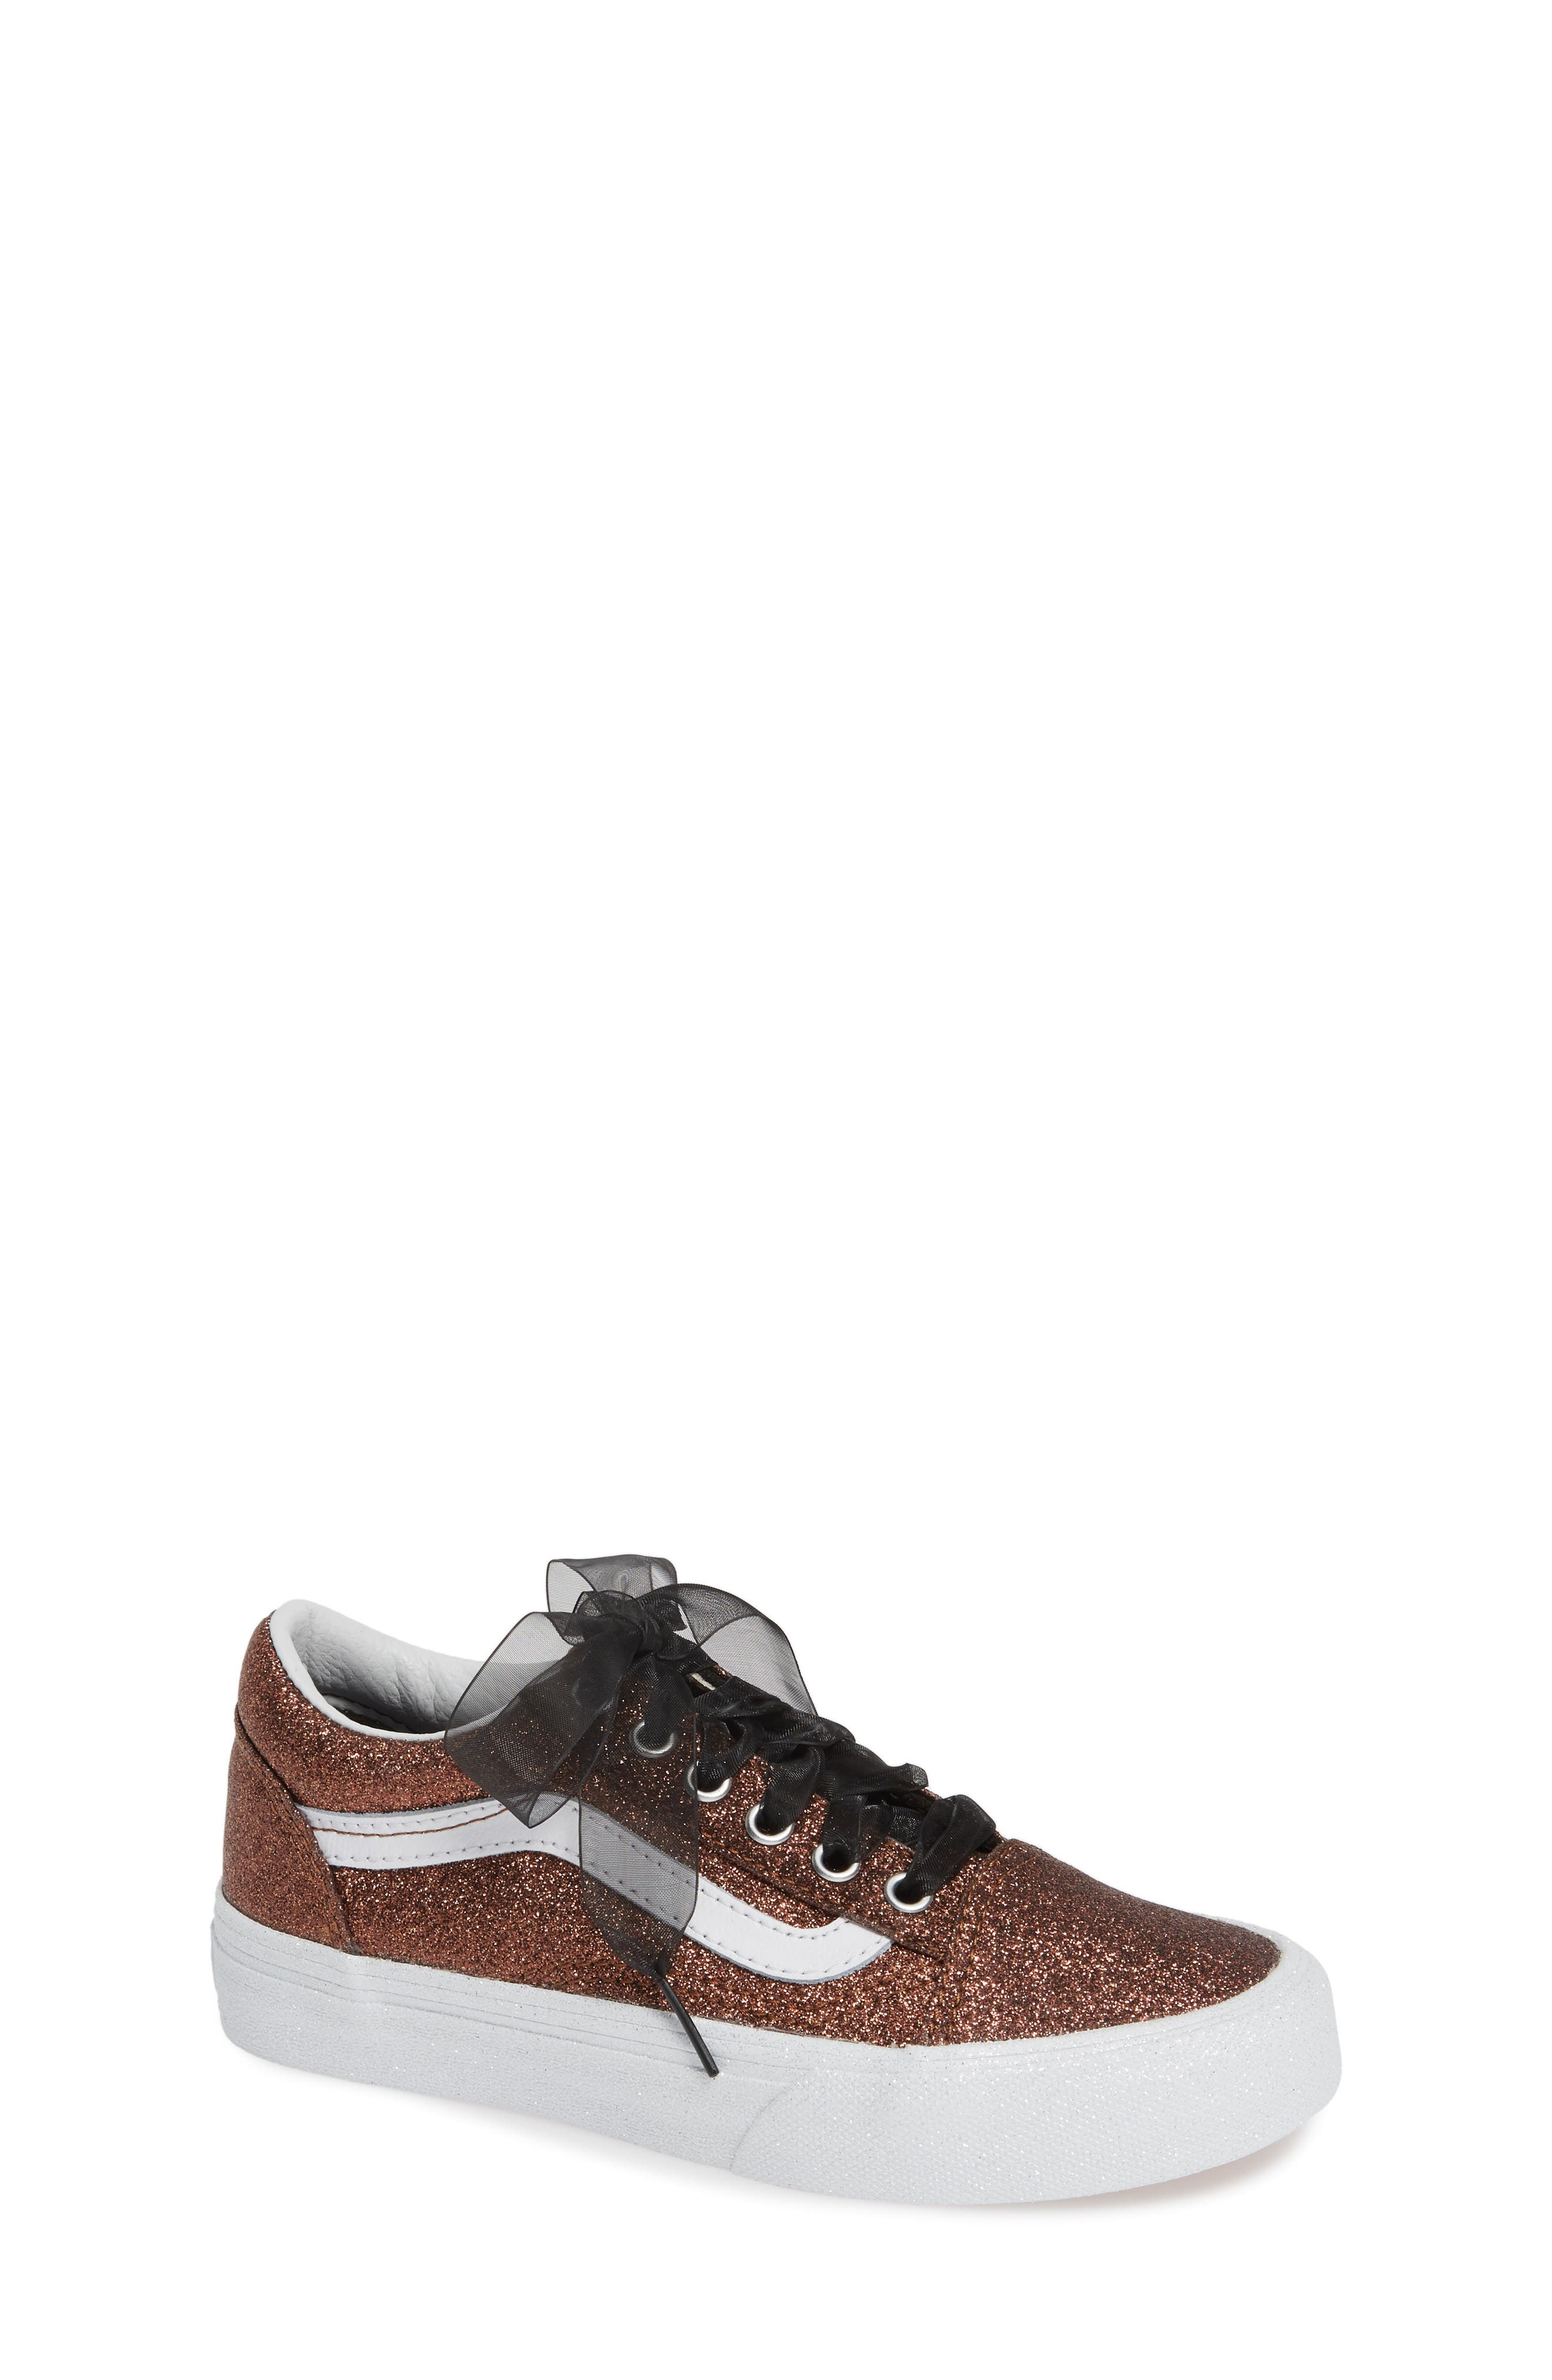 Old Skool Sneaker,                             Main thumbnail 1, color,                             BRONZE/ TRUE WHITE TEXTILE